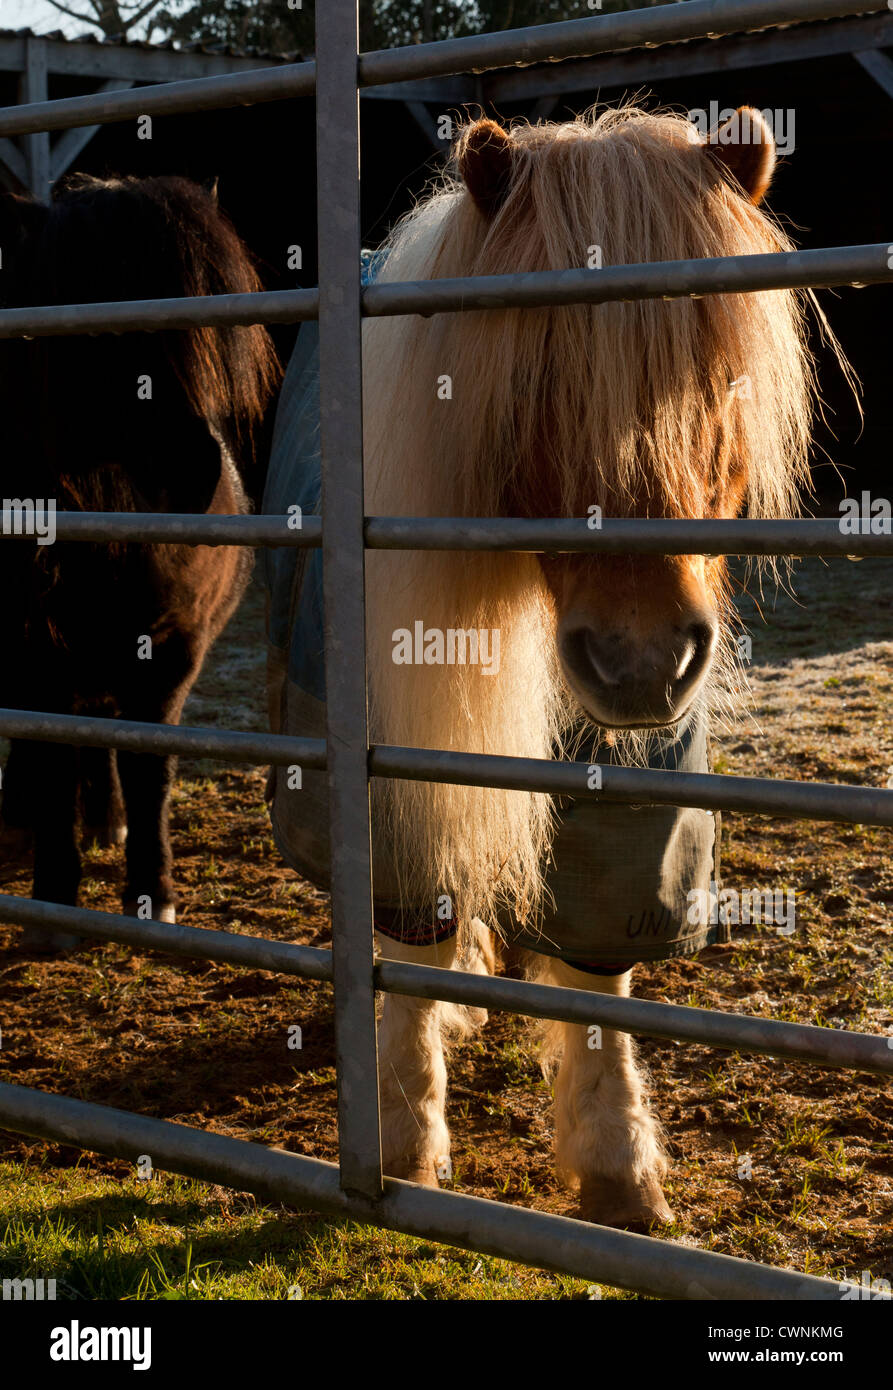 Two Shetland ponies looking through a metal gate, one wearing a winter  turnout rug - Stock Image